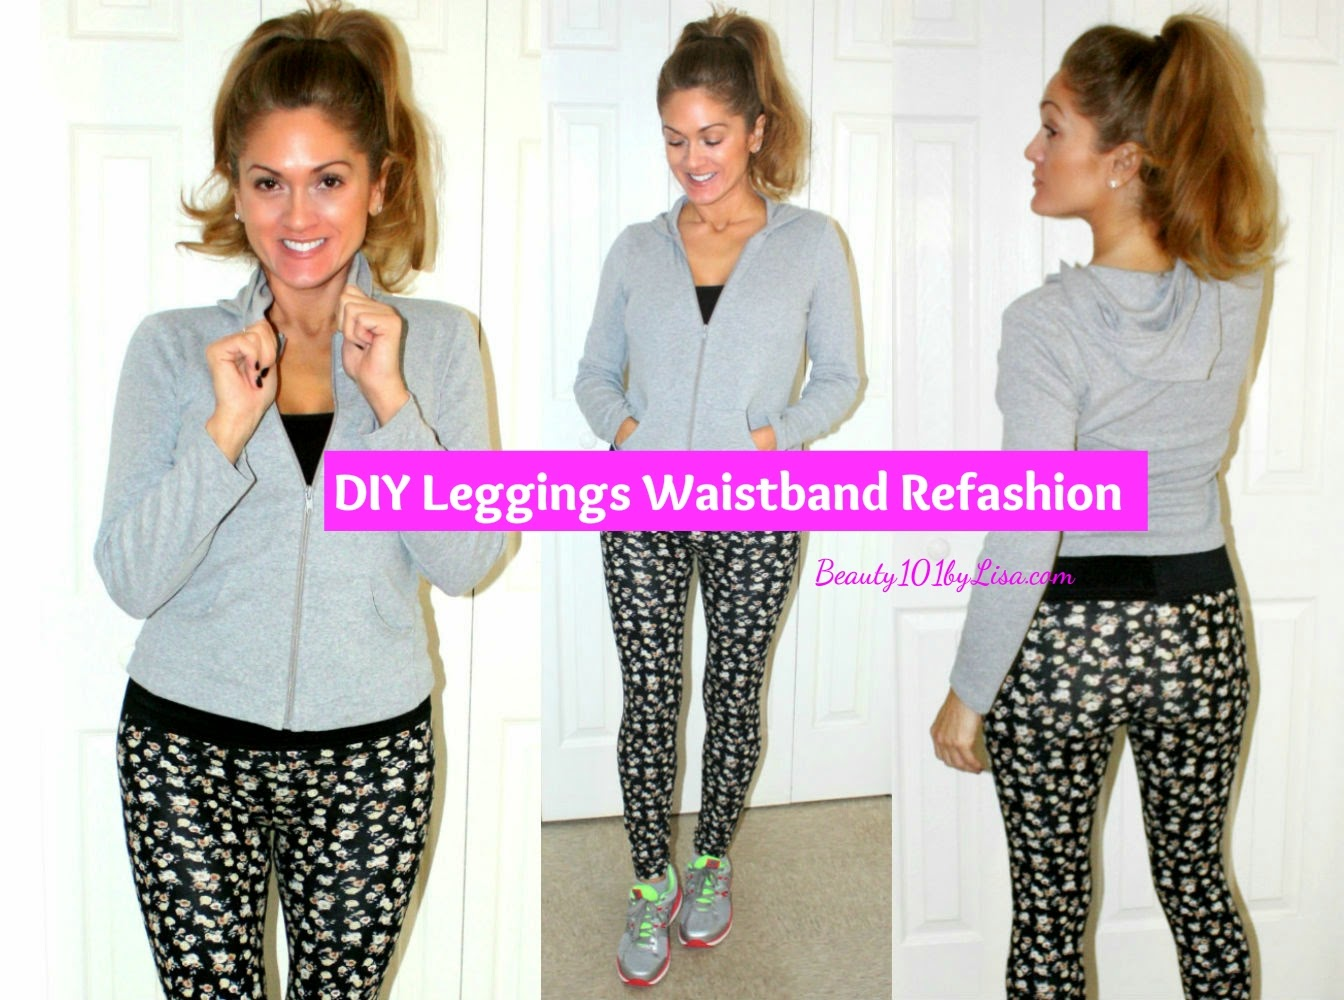 http://www.beauty101bylisa.com/2014/11/diy-leggings-waistband-refashion.html